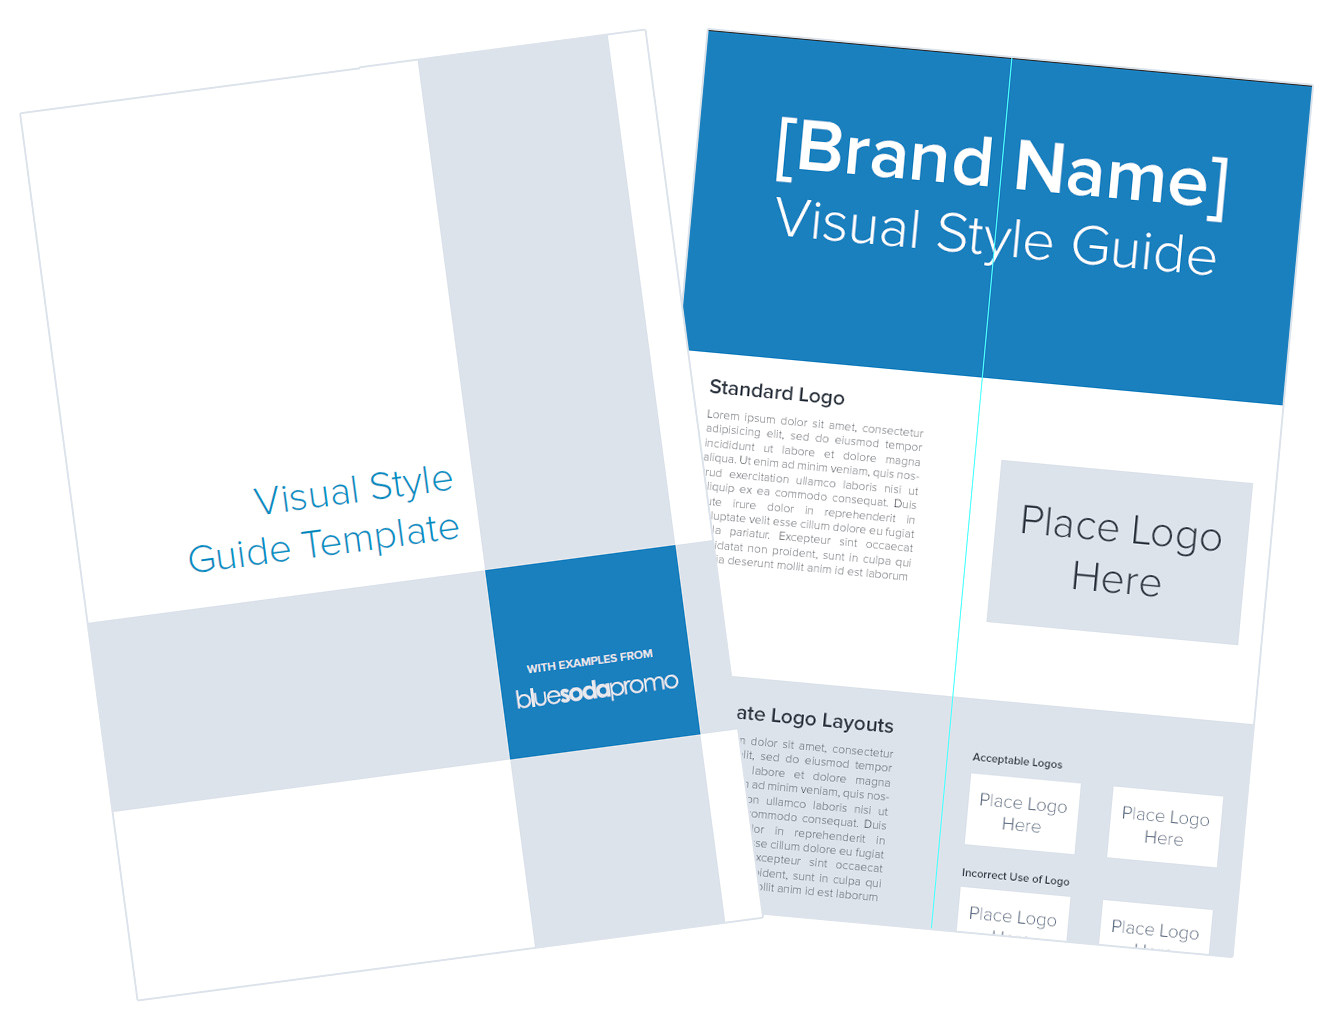 Visual Style Guide Template How to Create A Brand 39 S Visual Style Guide Template